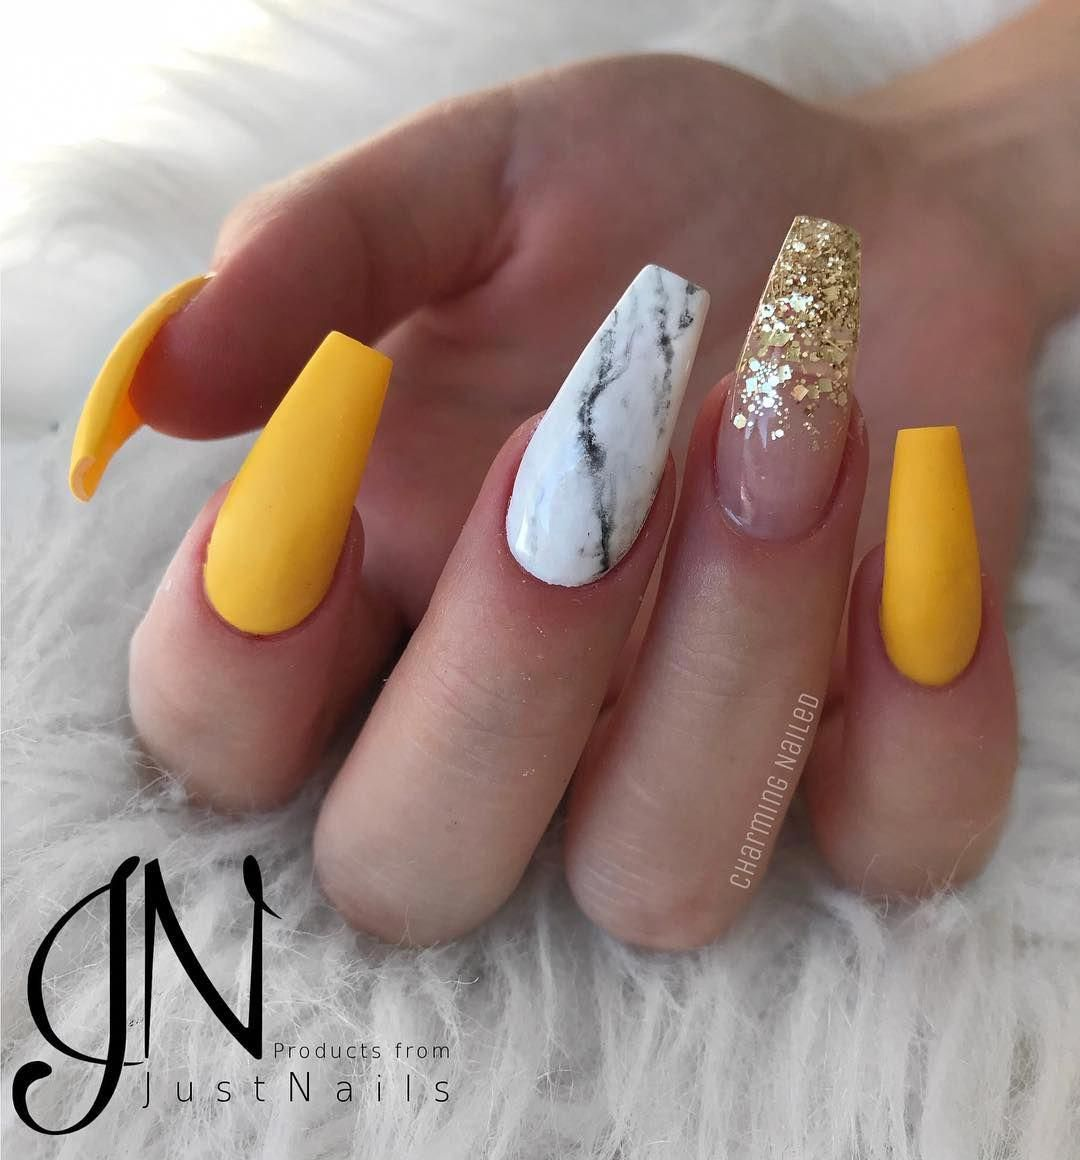 Acrylic Nail Art For Teens New Years Eve Almondacrylicnails Pretty Acrylic Nails Winter Nails Acrylic Yellow Nails Design